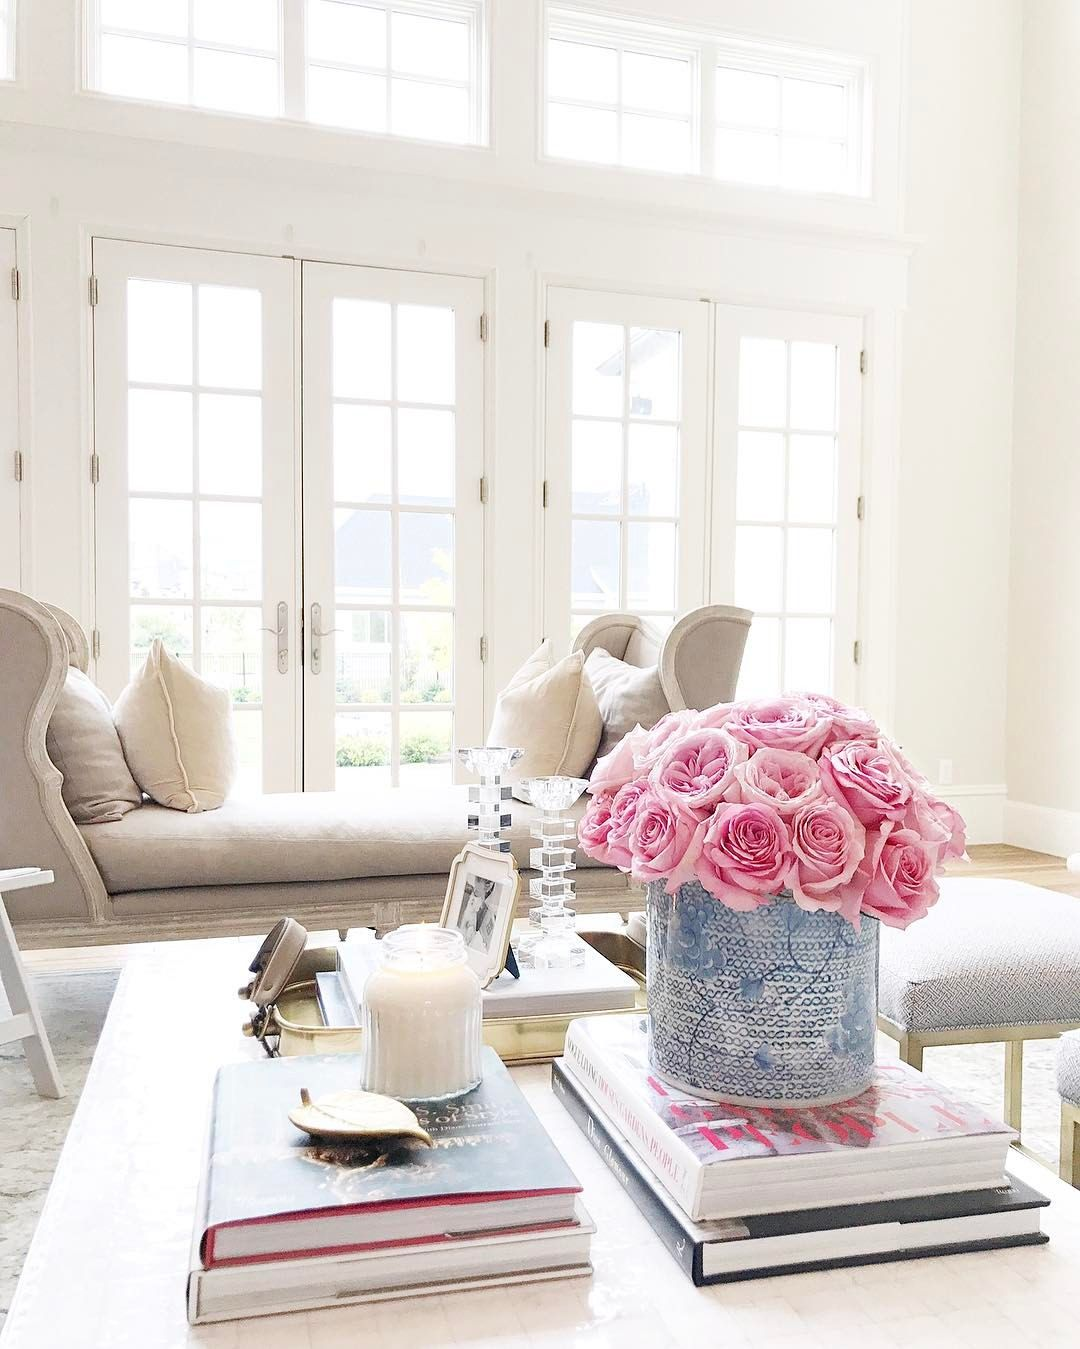 9 089 Likes 102 Comments Rach Parcell Pink Peonies